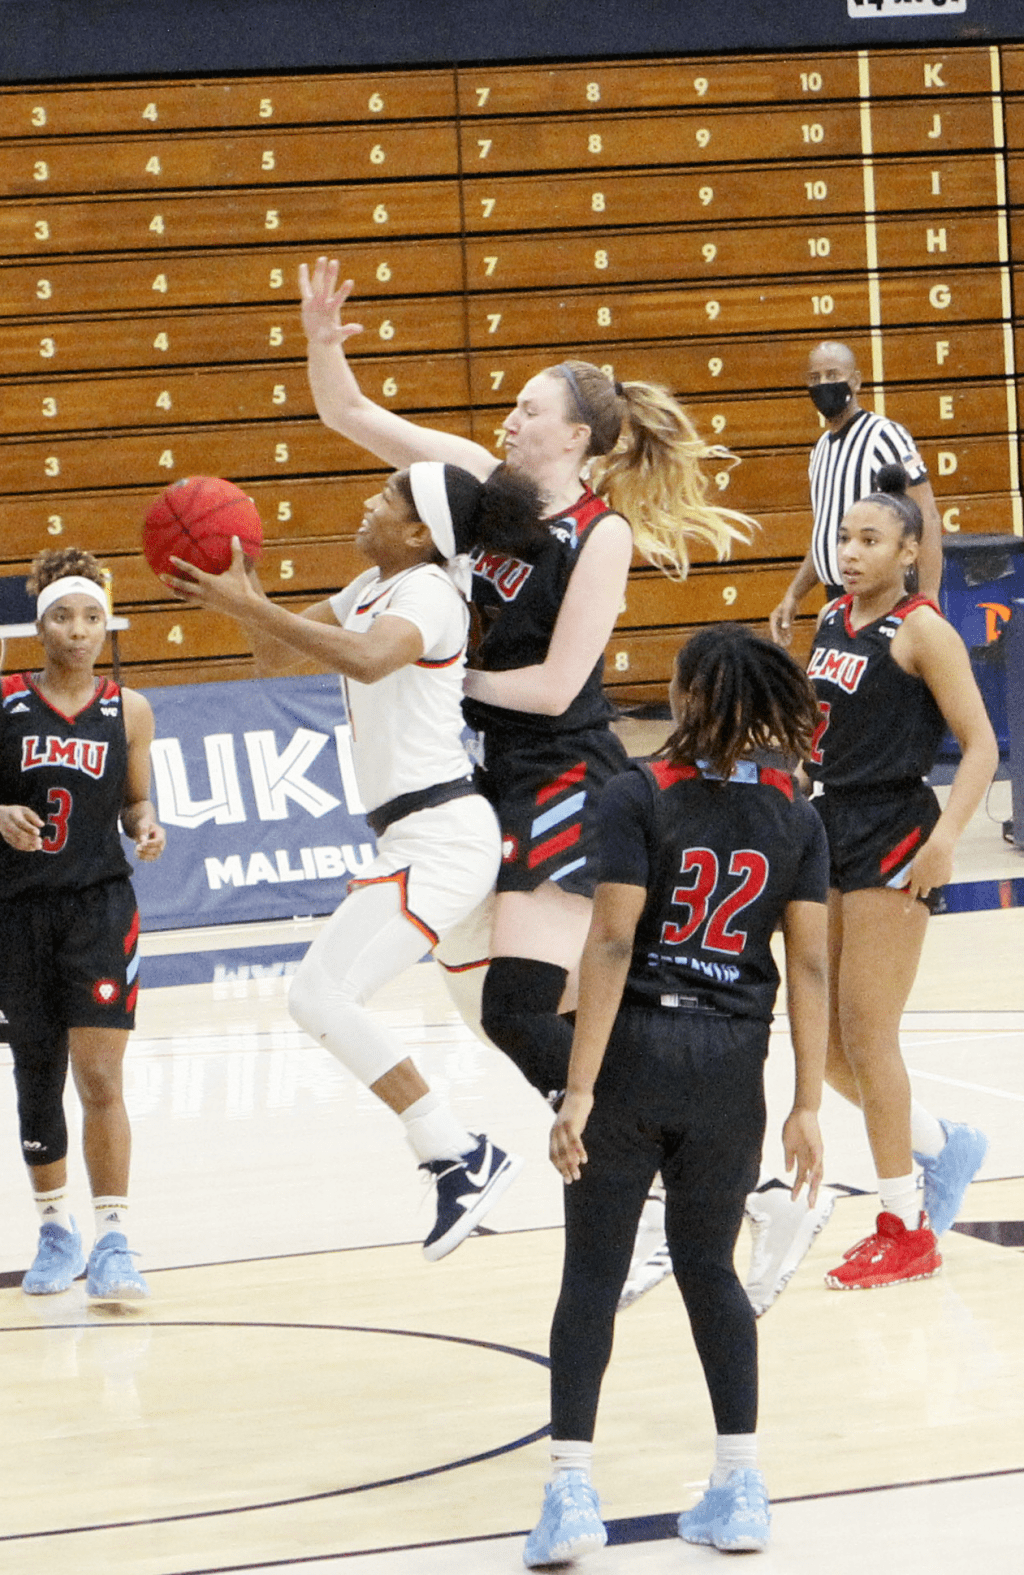 Junior guard Cheyenne Givens drives the lane against LMU's Megan Mandel during Saturday's win. The Waves survived a second half Lions comeback to notch their first WCC win of the season.